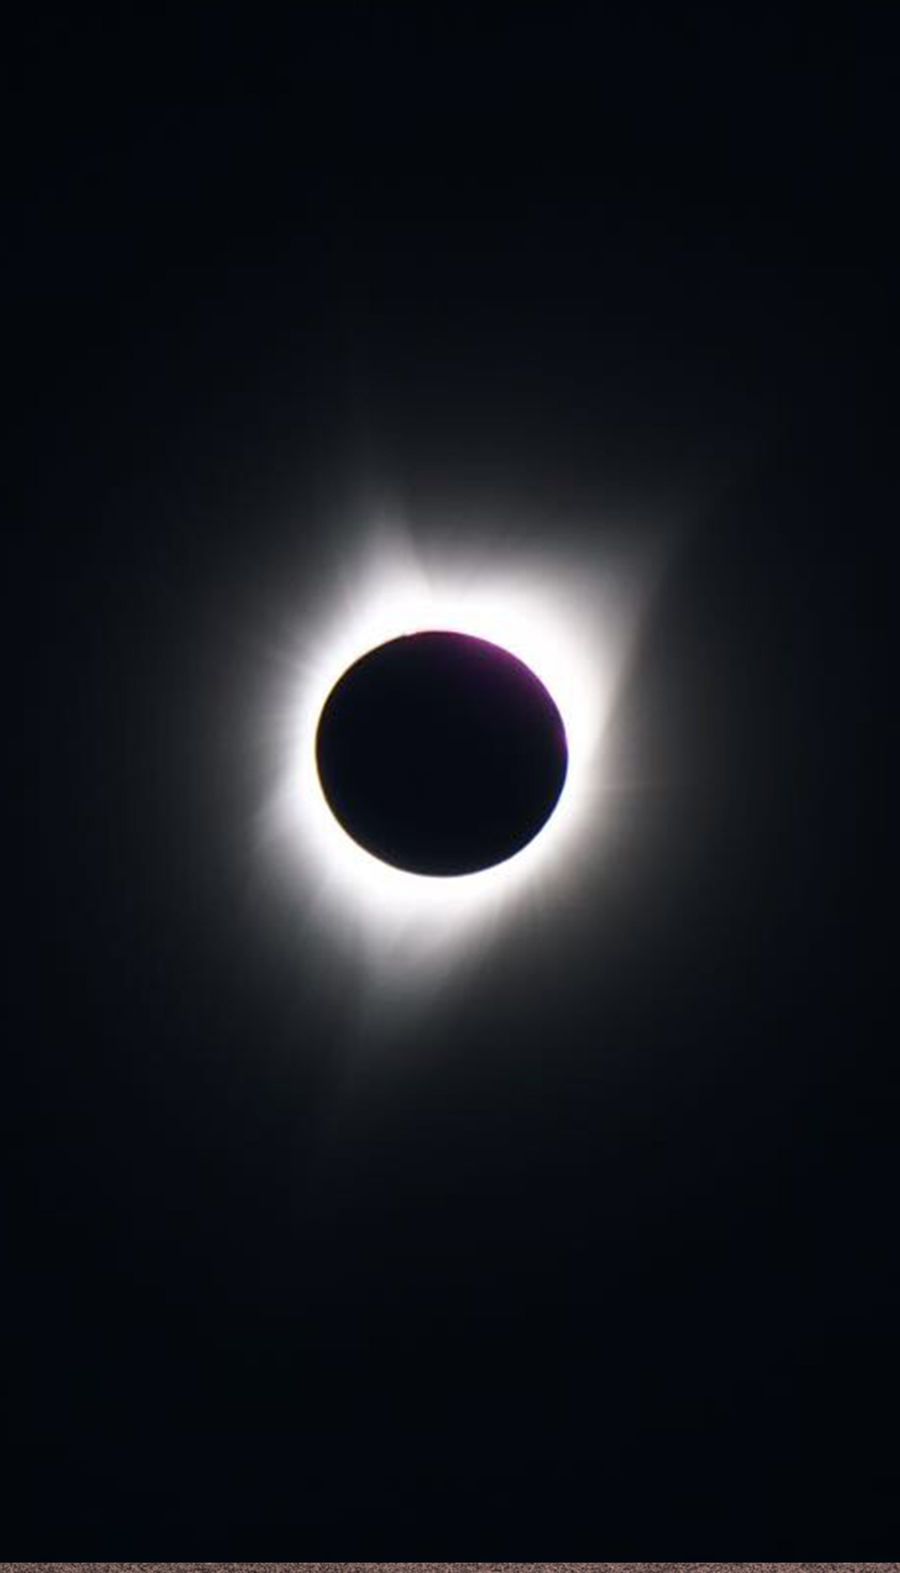 Oregon SolarFest 2017: An Astronomical Festival